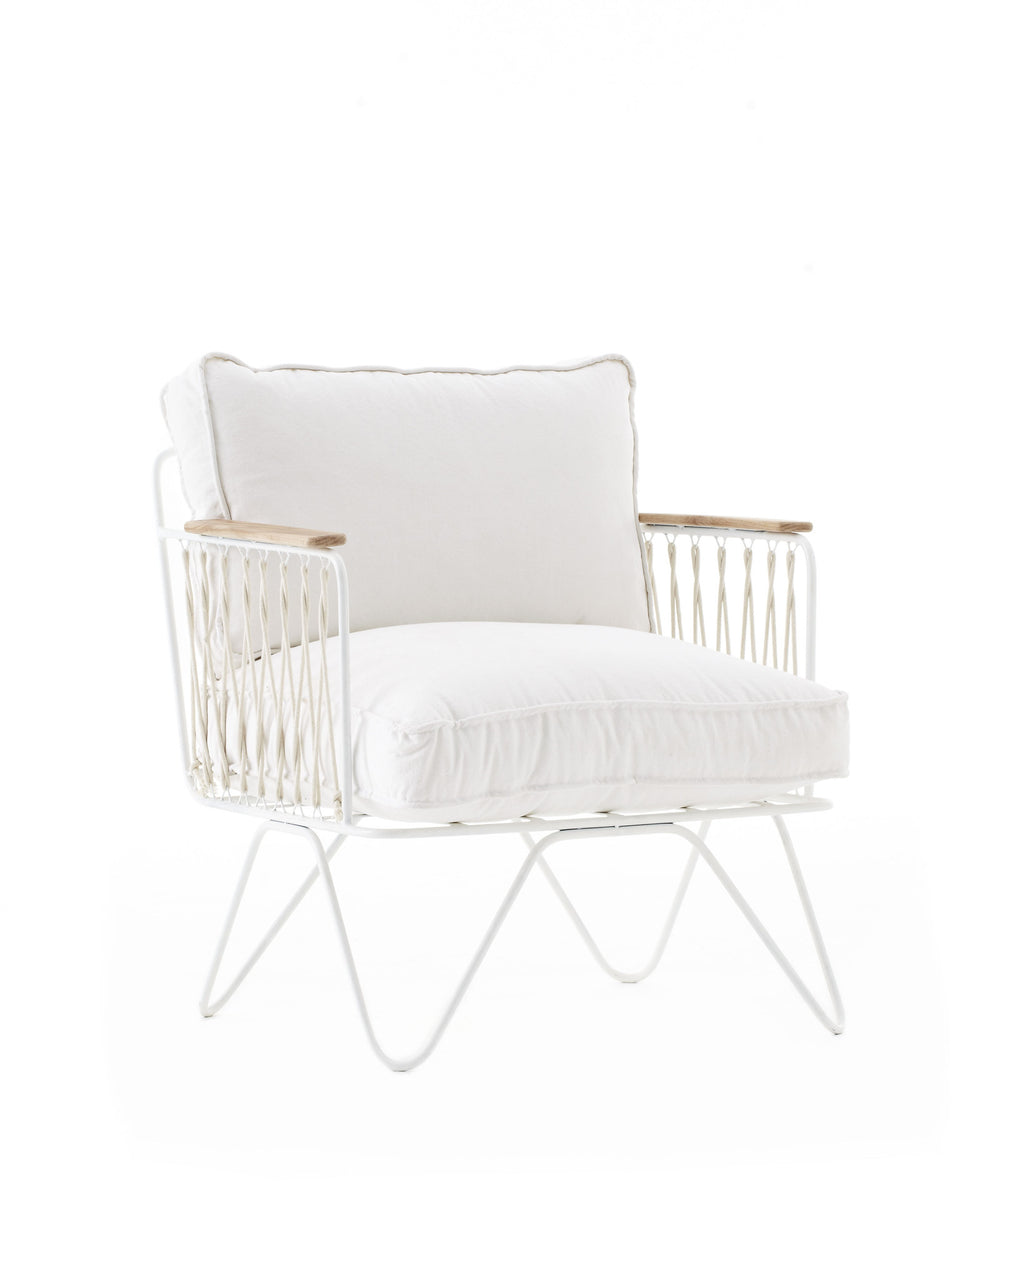 The Croisette Armchair by Honore exists in velvet and cotton for indoor. the comfortable chair invites you to relax and take the time to enjoy the little moments. | colour:White